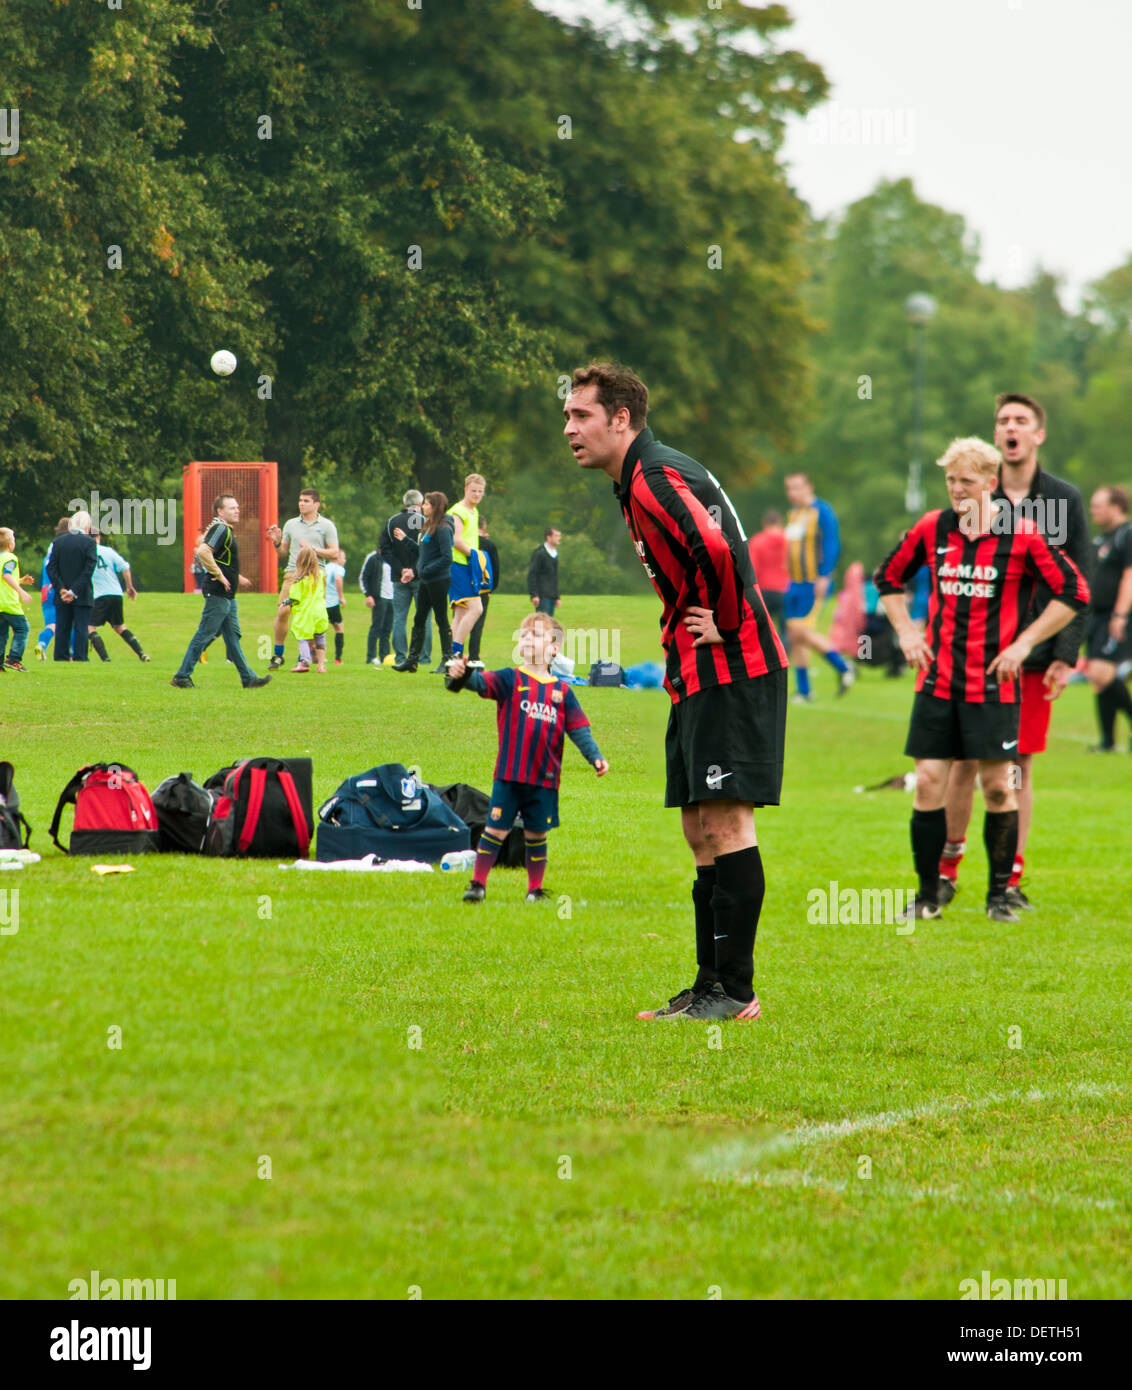 Sunday league football match in park - Stock Image